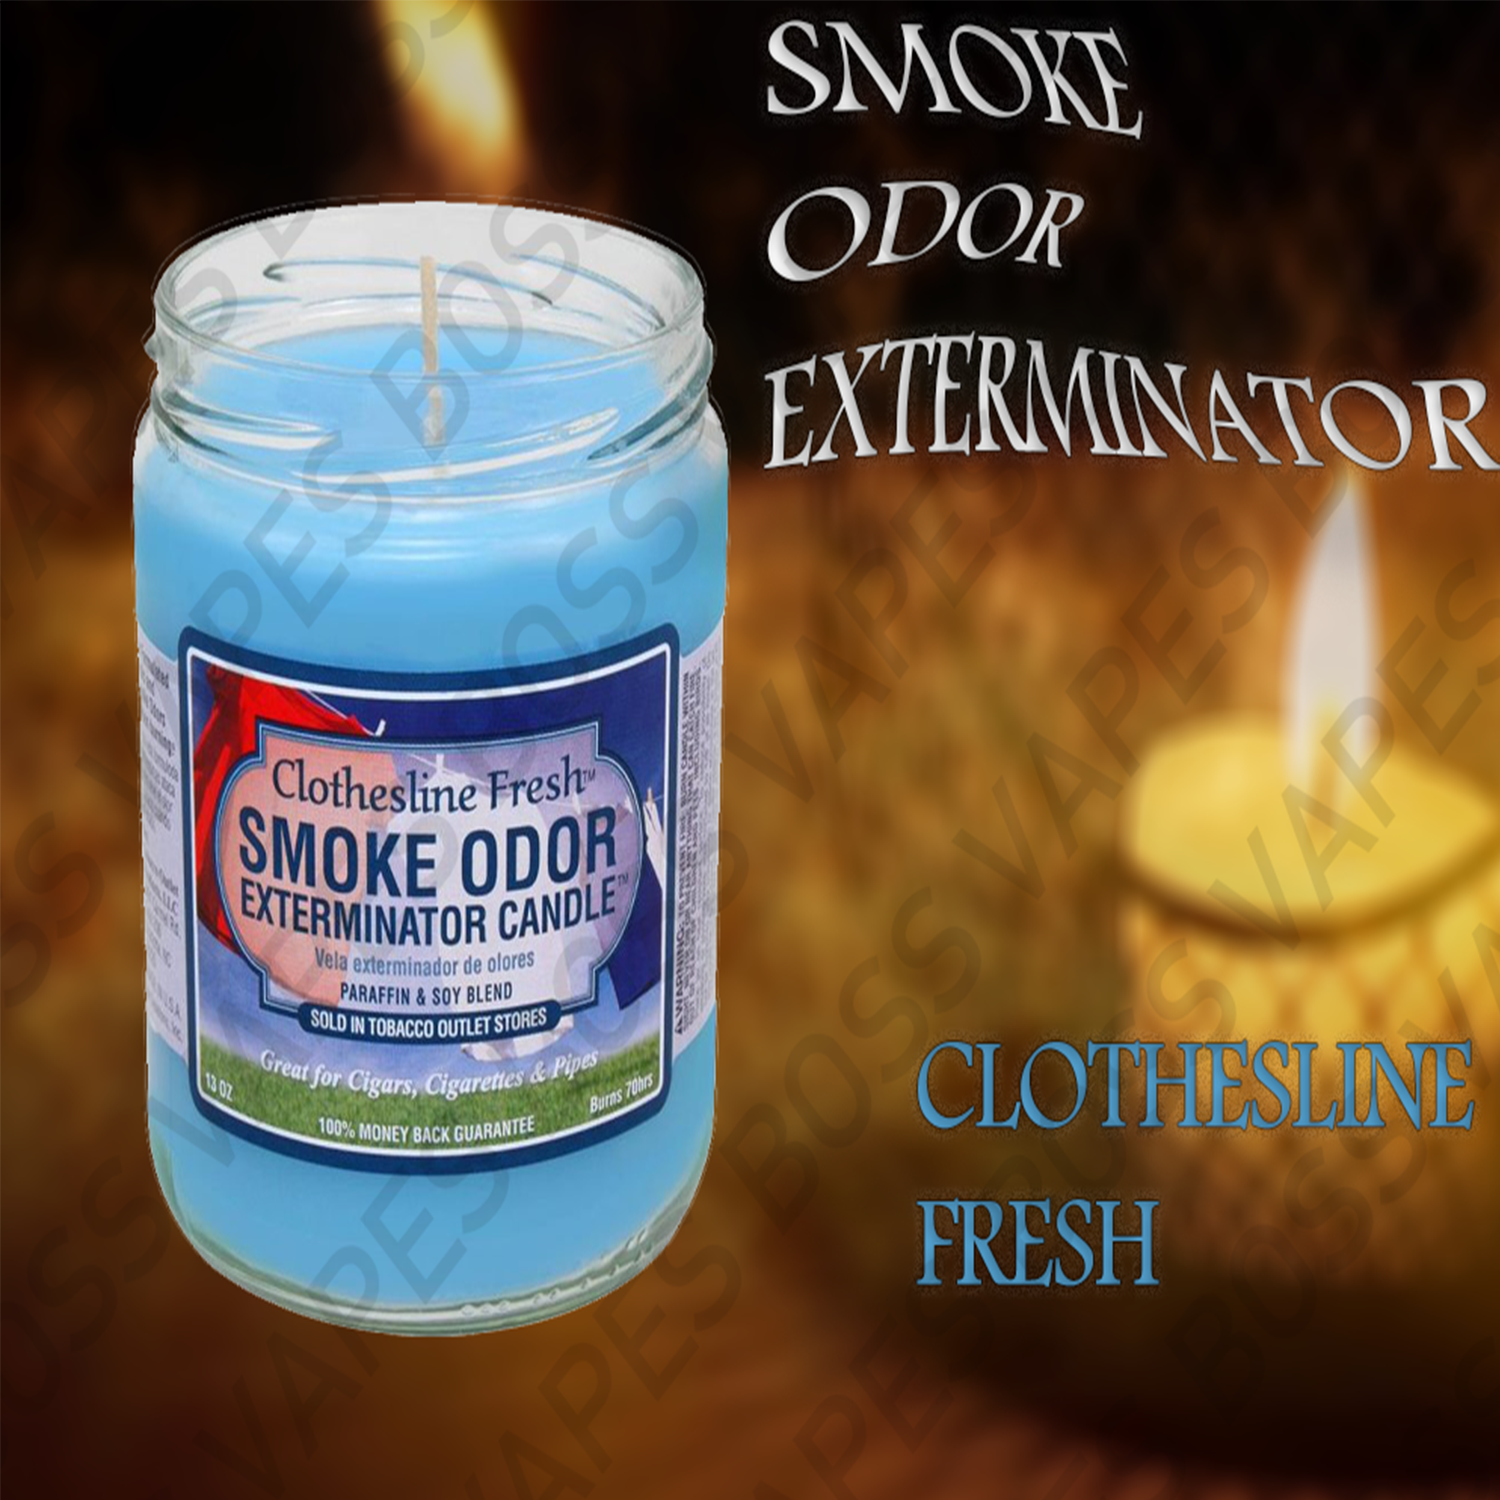 Smoke Odor Exterminator Candles - 13oz